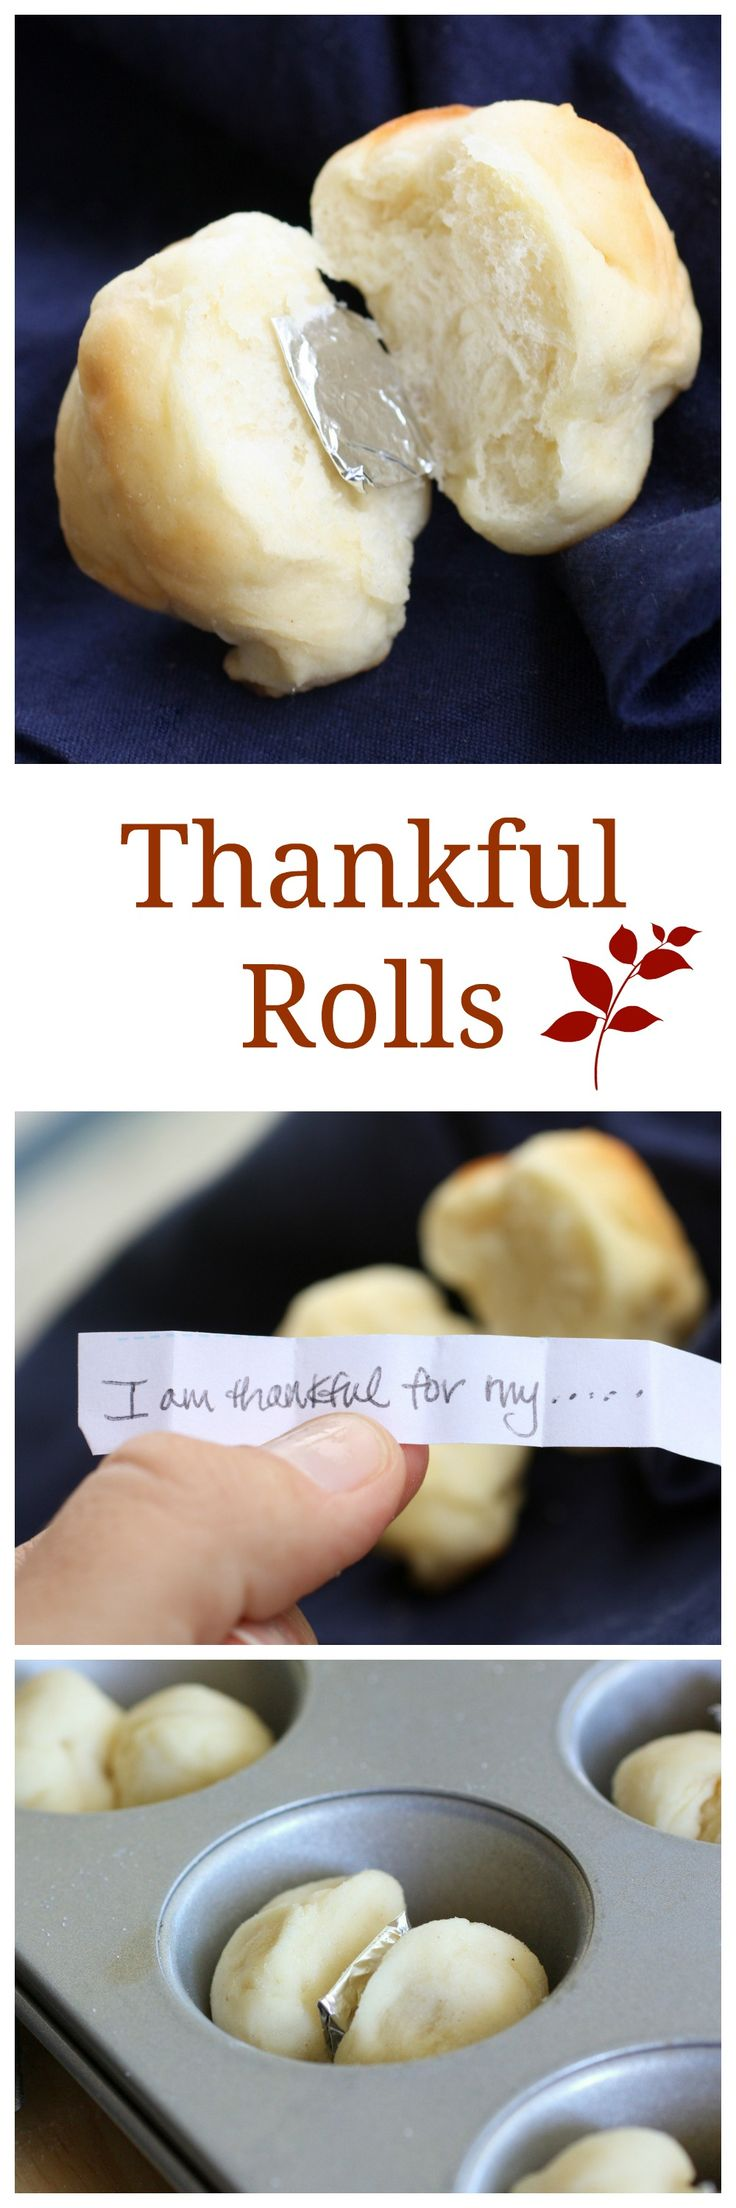 Thankful Rolls - a fun way to liven up the conversation at the Thanksgiving table. the-girl-who-ate-everything.com